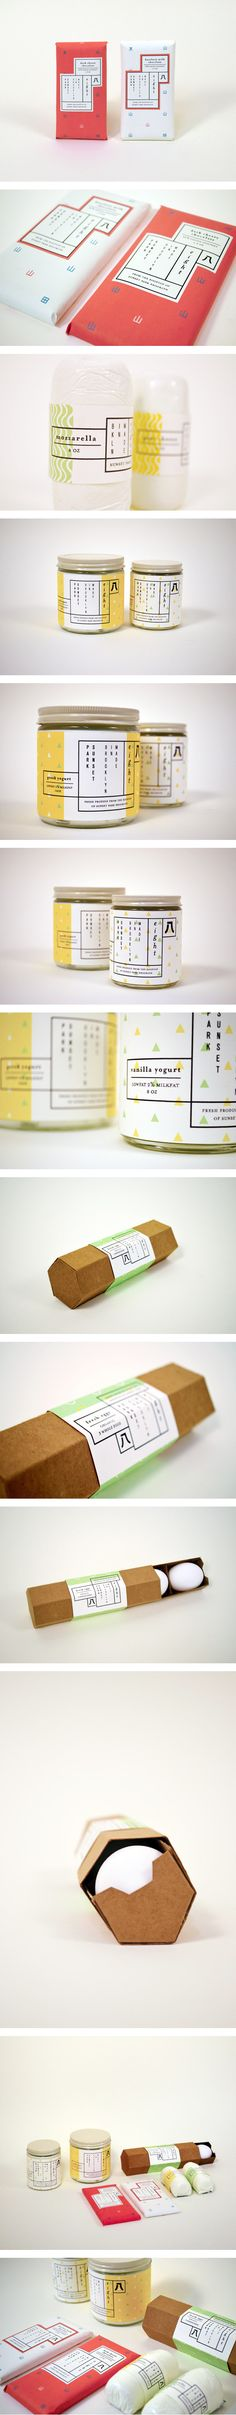 8 | Eight Rooftop Gardens Packaging by Esther Li. Great story behind the #packaging PD                                                                                                                            More